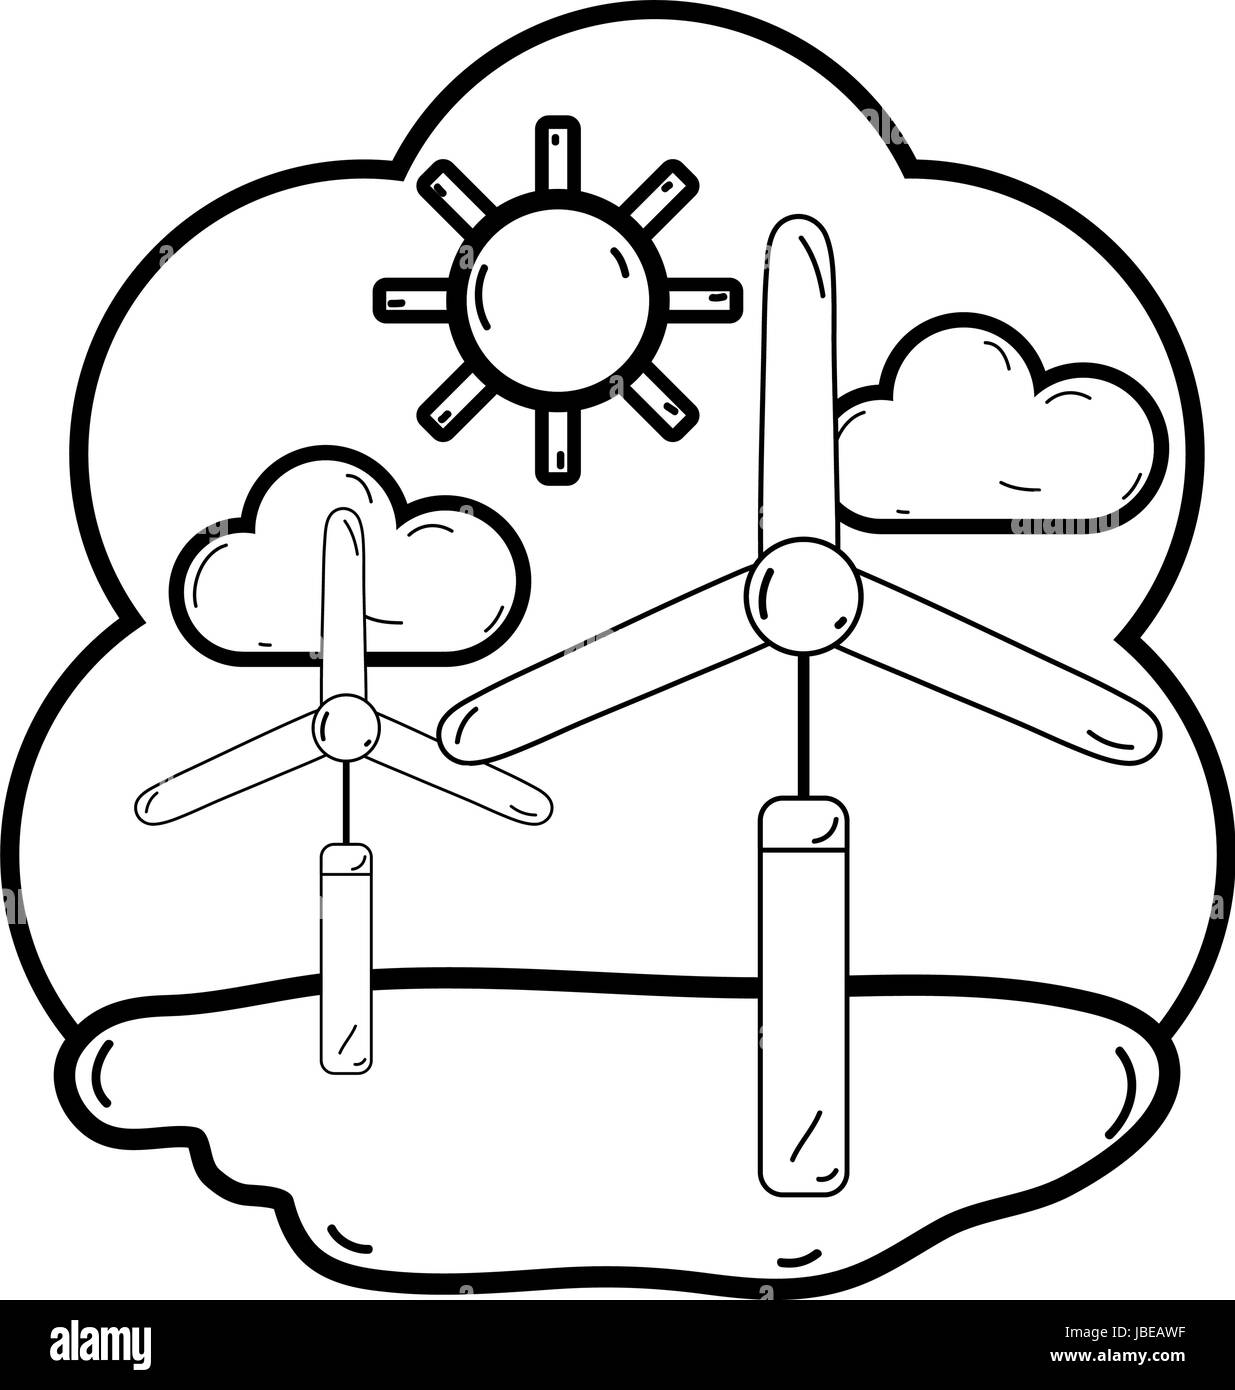 line windpower industries to healp the environment - Stock Vector